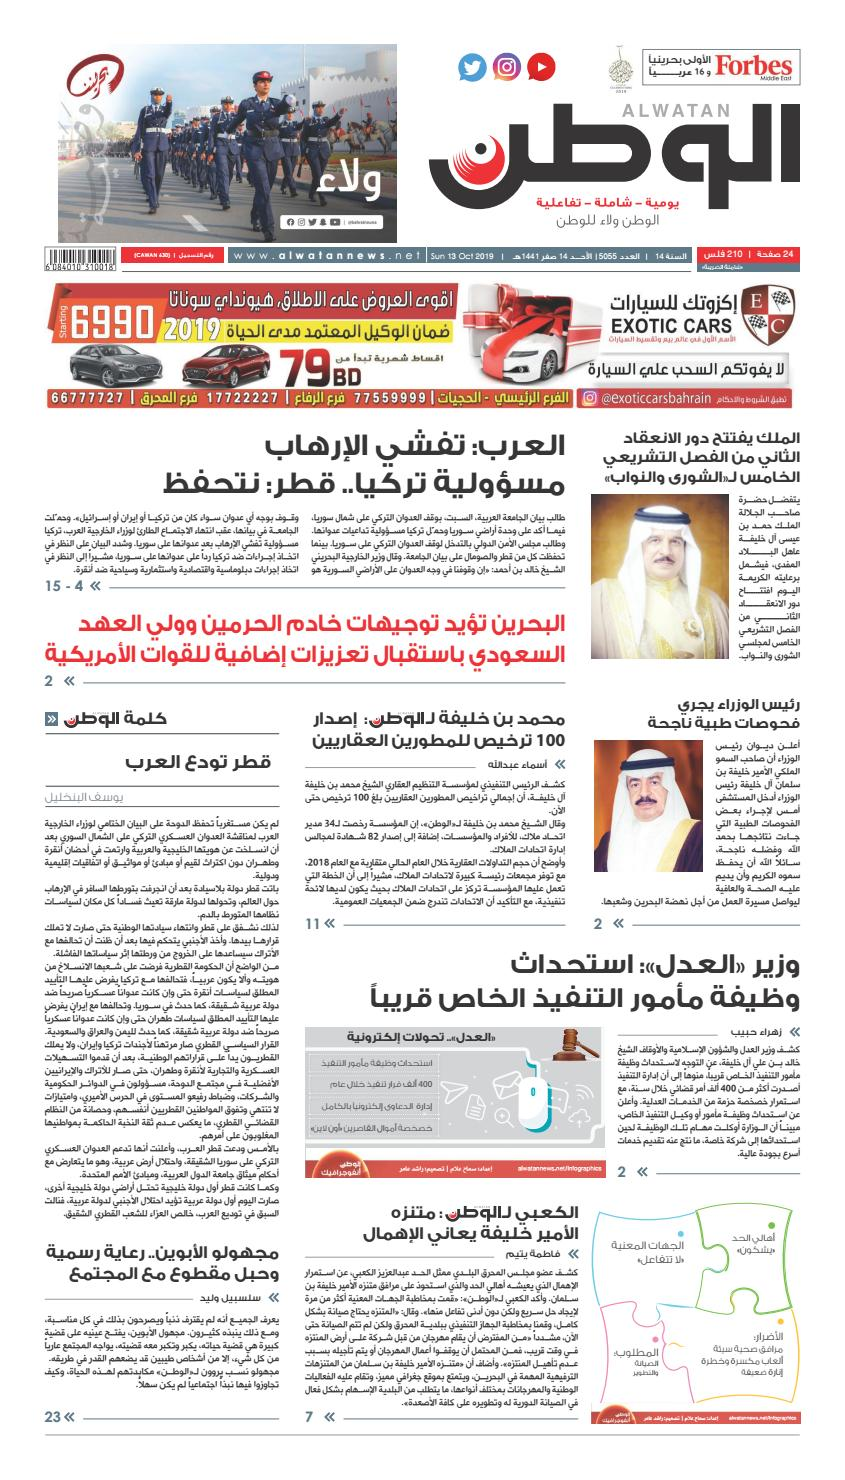 Alwatan 13 Oct 2019 Pdf By Alwatan Bh Issuu